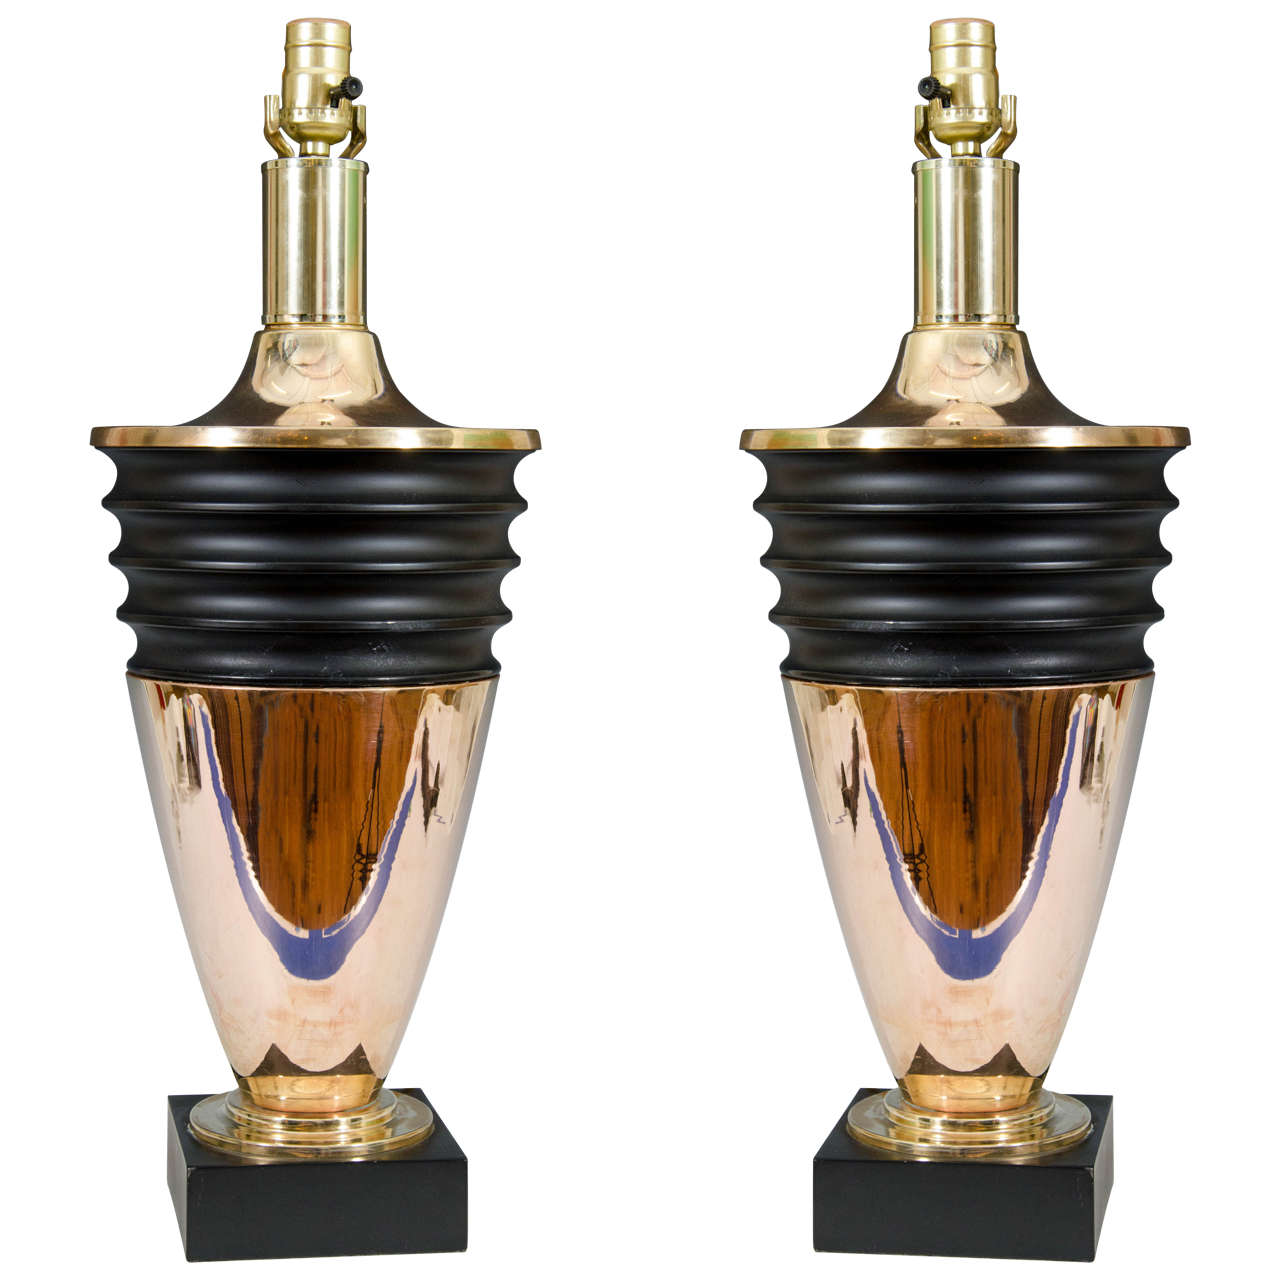 Midcentury Pair of Brass Art Deco Style Table Lamps